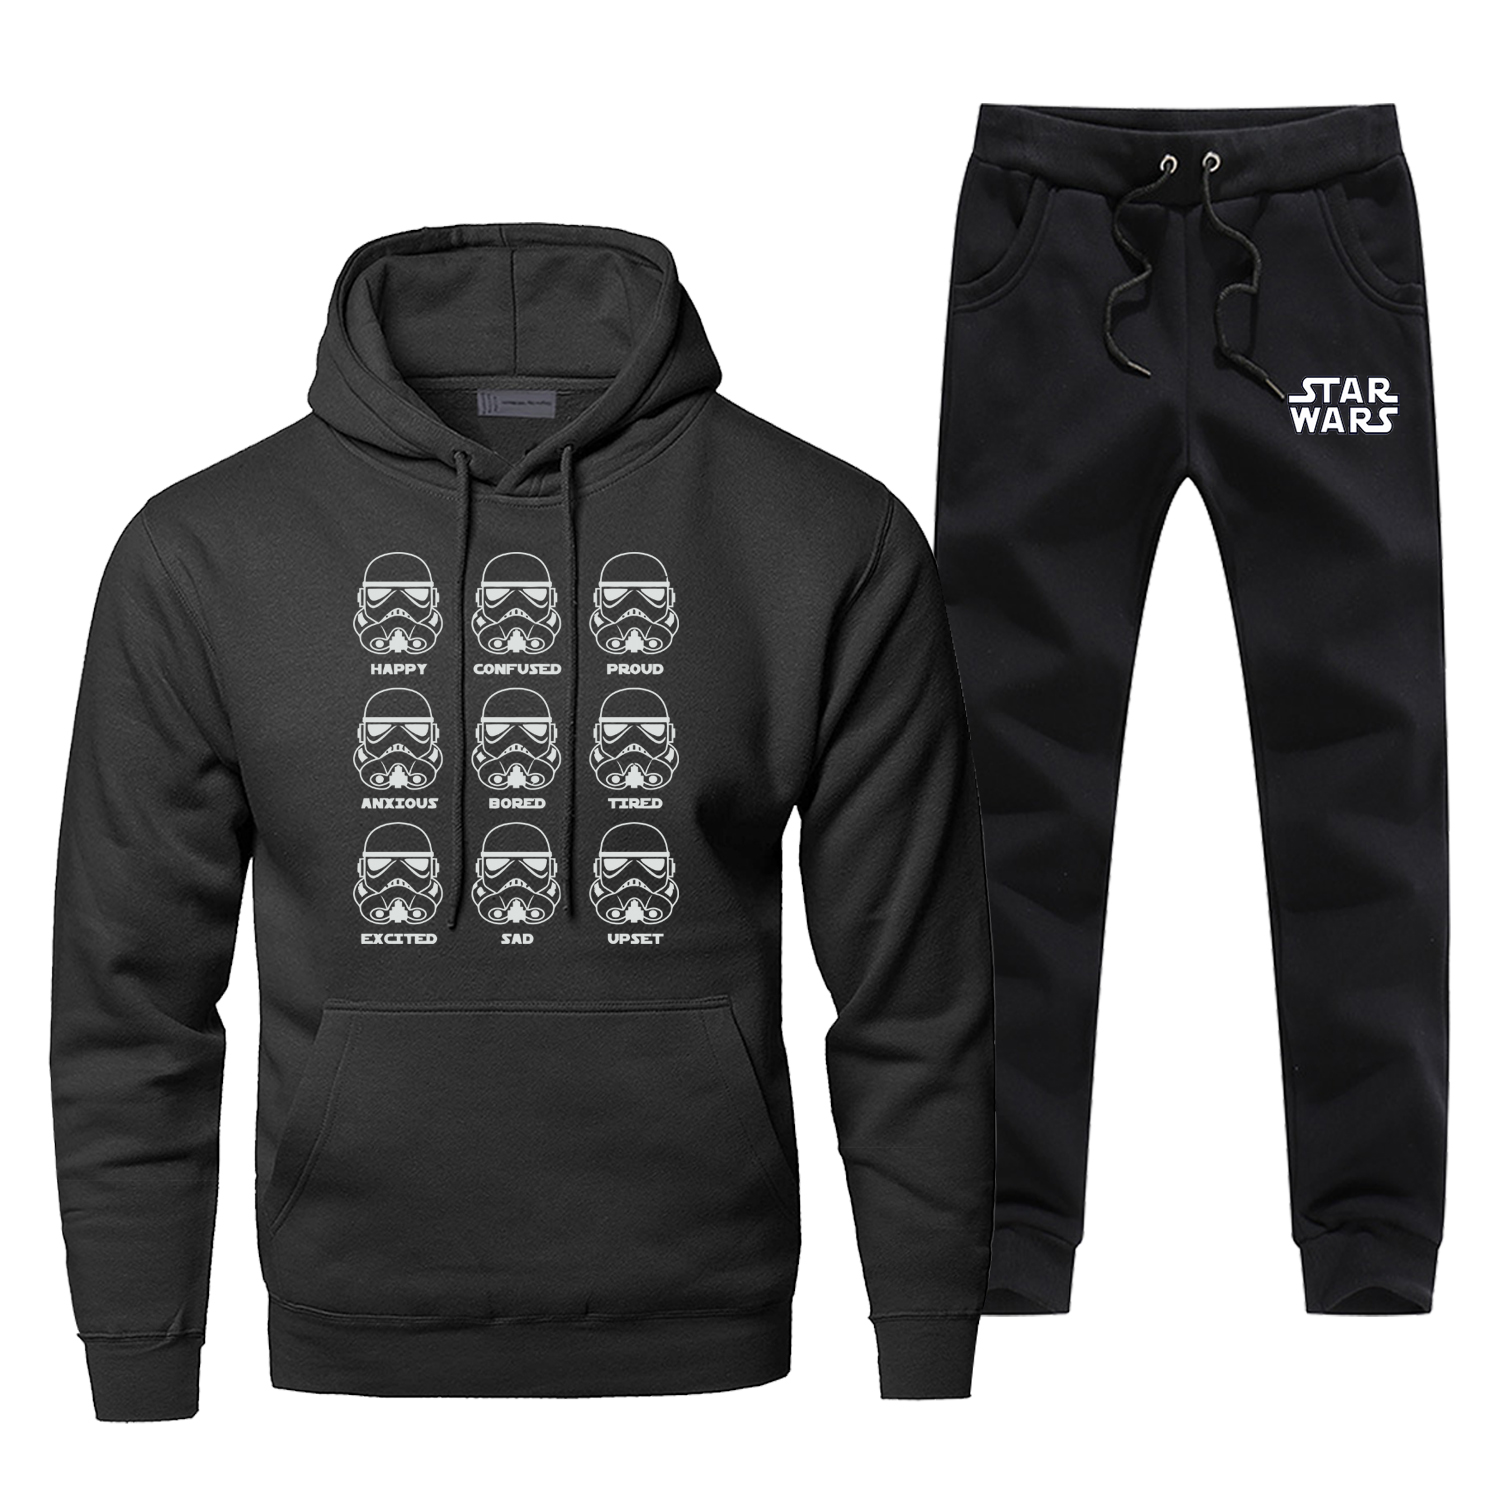 Star Wars Darth Hoodies Pants Set Men Hoodie Sweatshirt Mens Hoodies Pollover 2 Piece Set Streetwear Male Starwars Sweatshirts